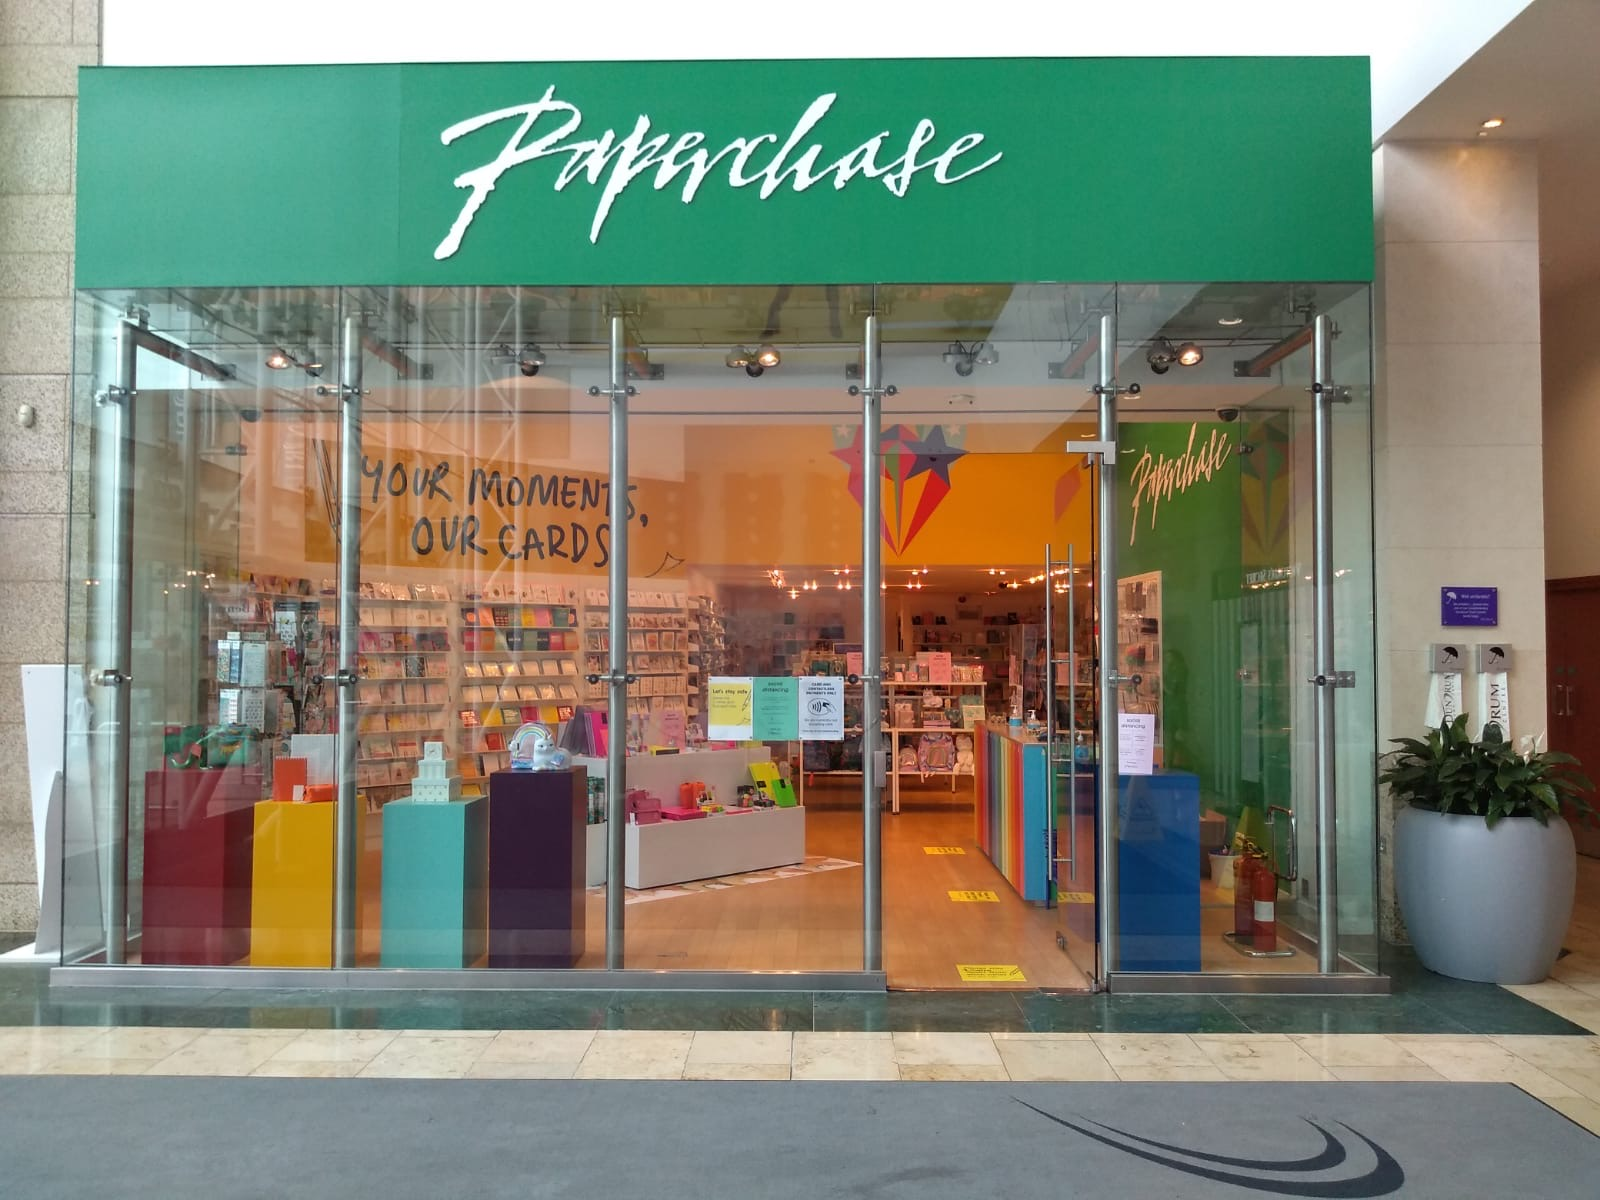 Above: The new store in Dublin's Dundrum centre is Paperchase's first standalone store in the Republic of Ireland's capital.